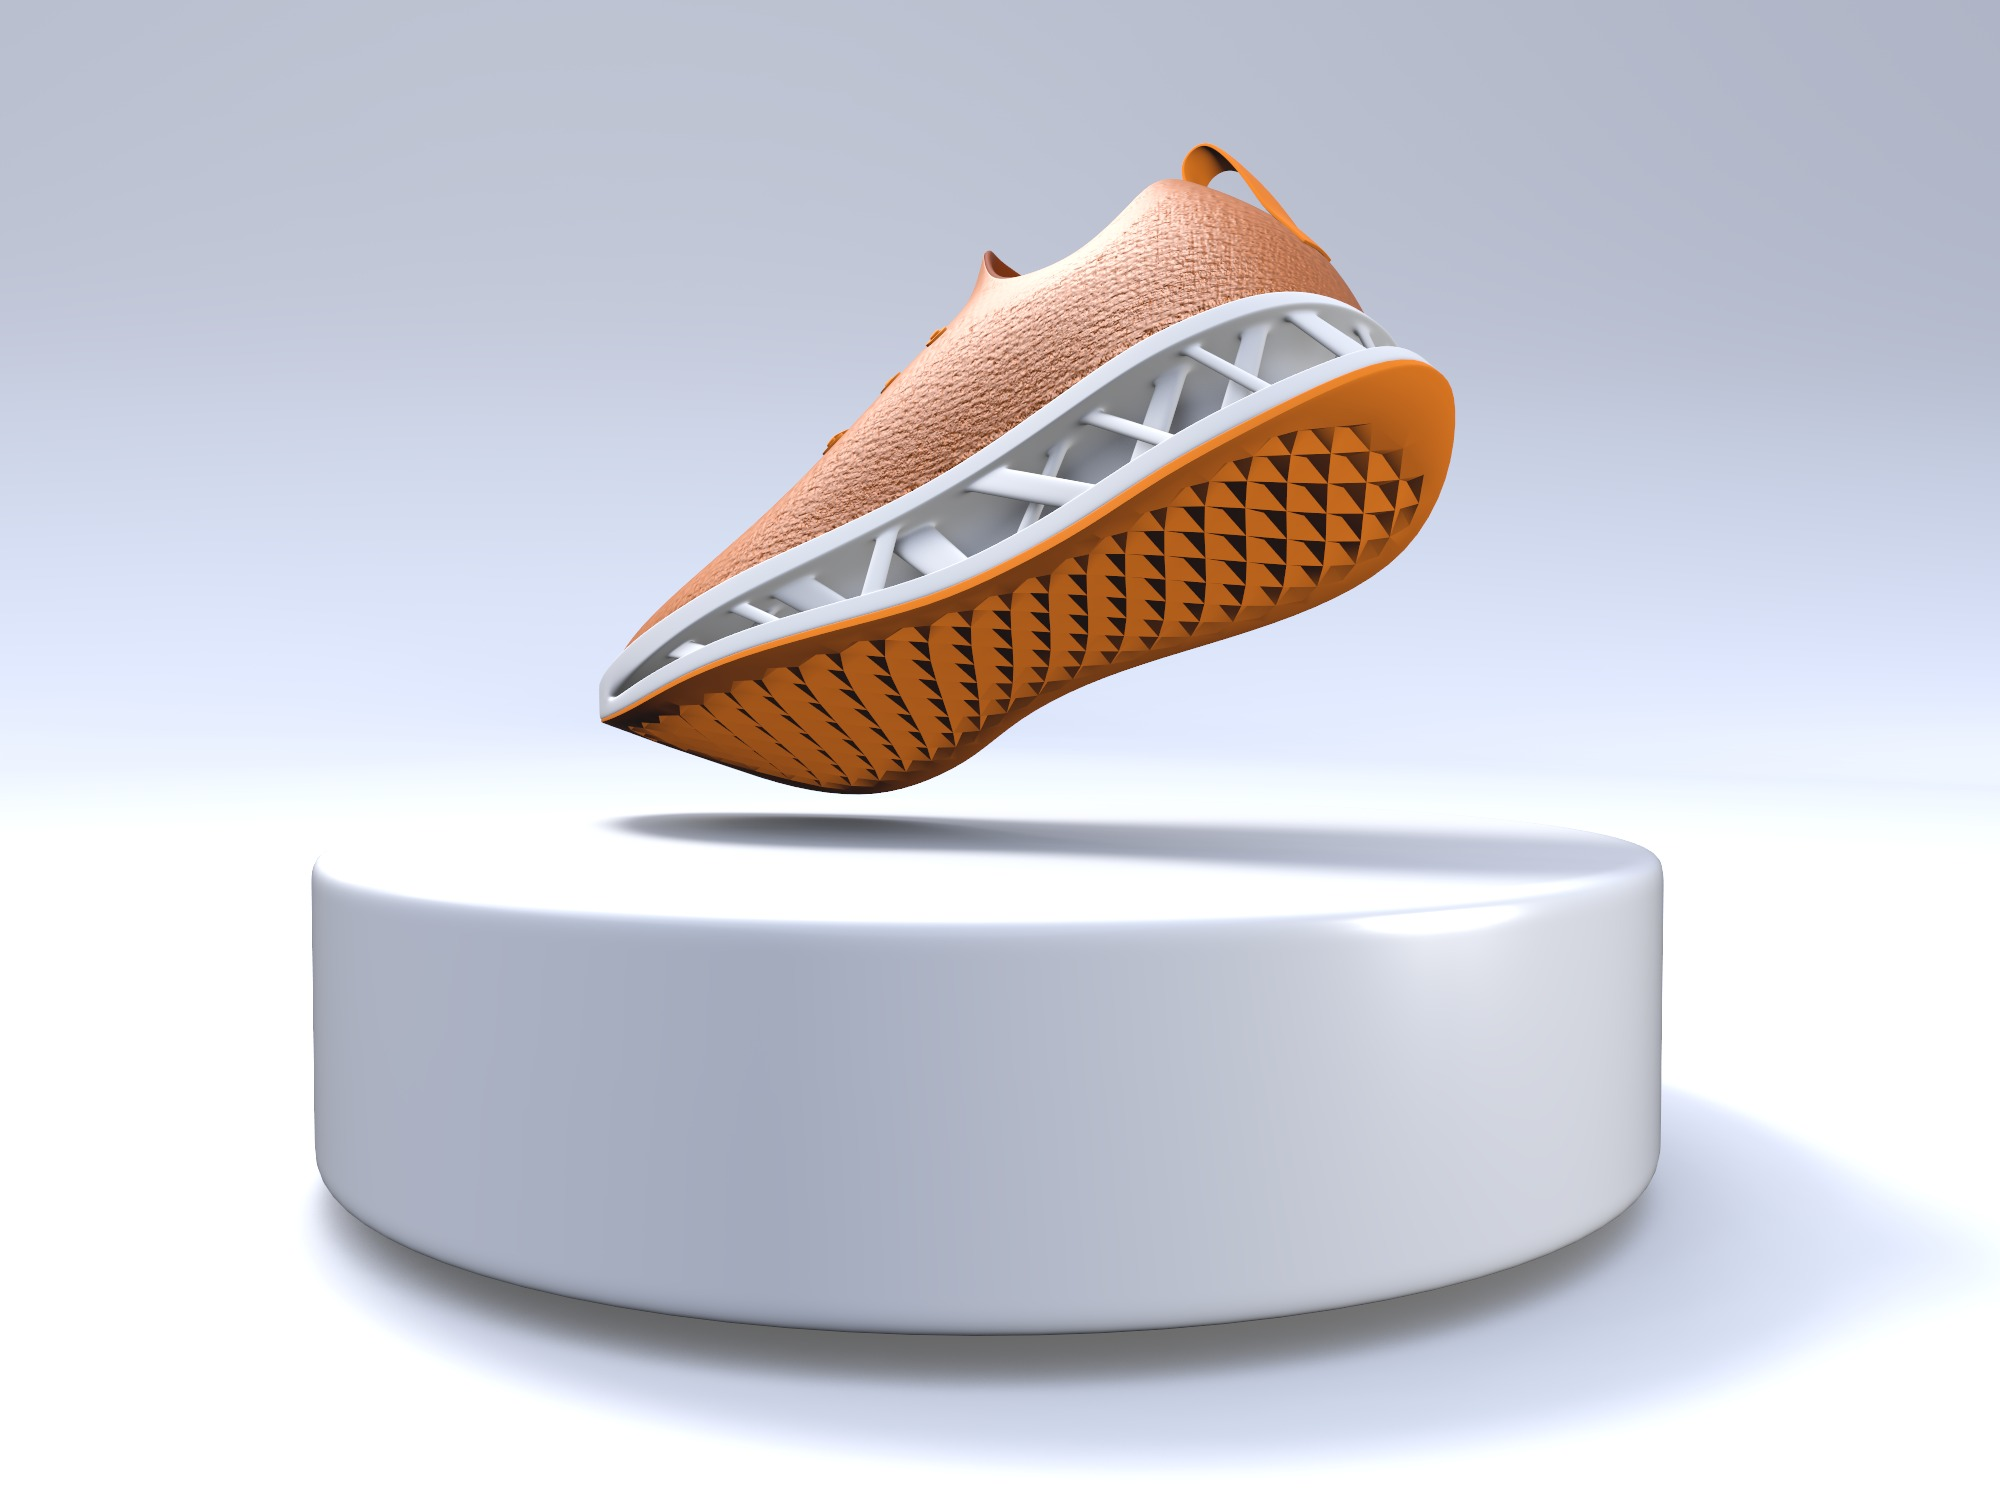 Running Sneaker - 3D design by VECTARY on Aug 1, 2018